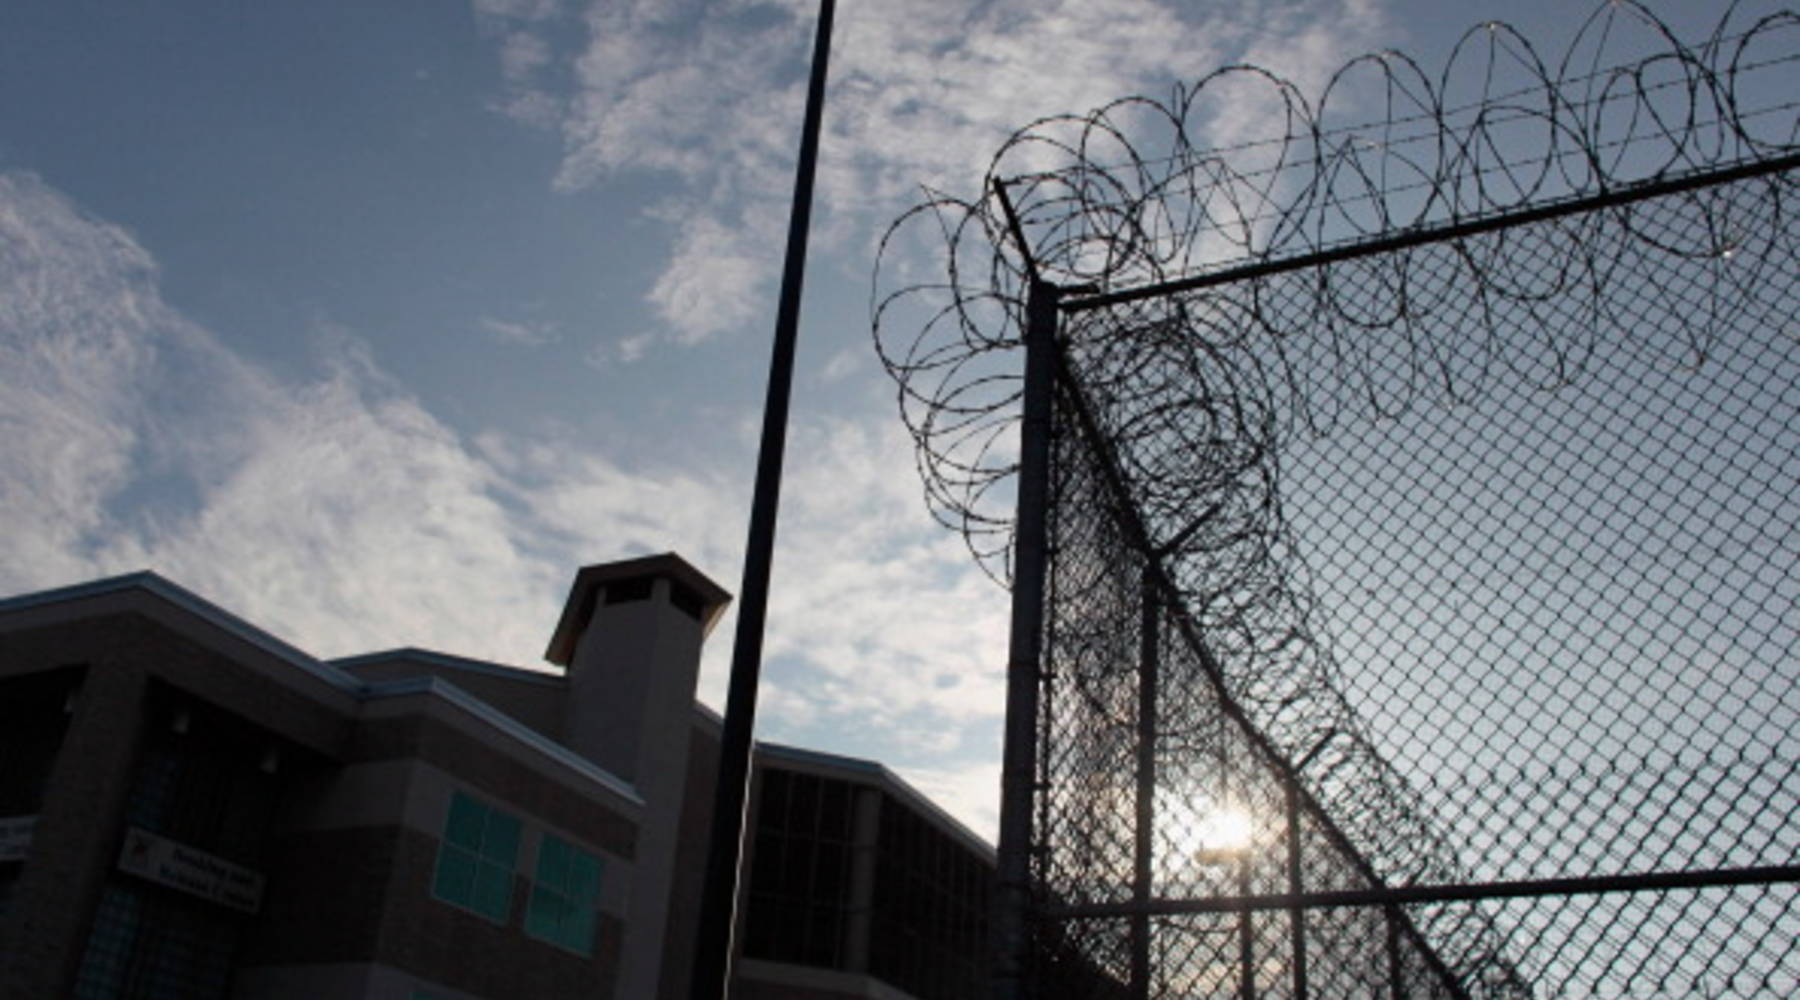 Correction officers shortage: a danger to inmates? - Marketplace